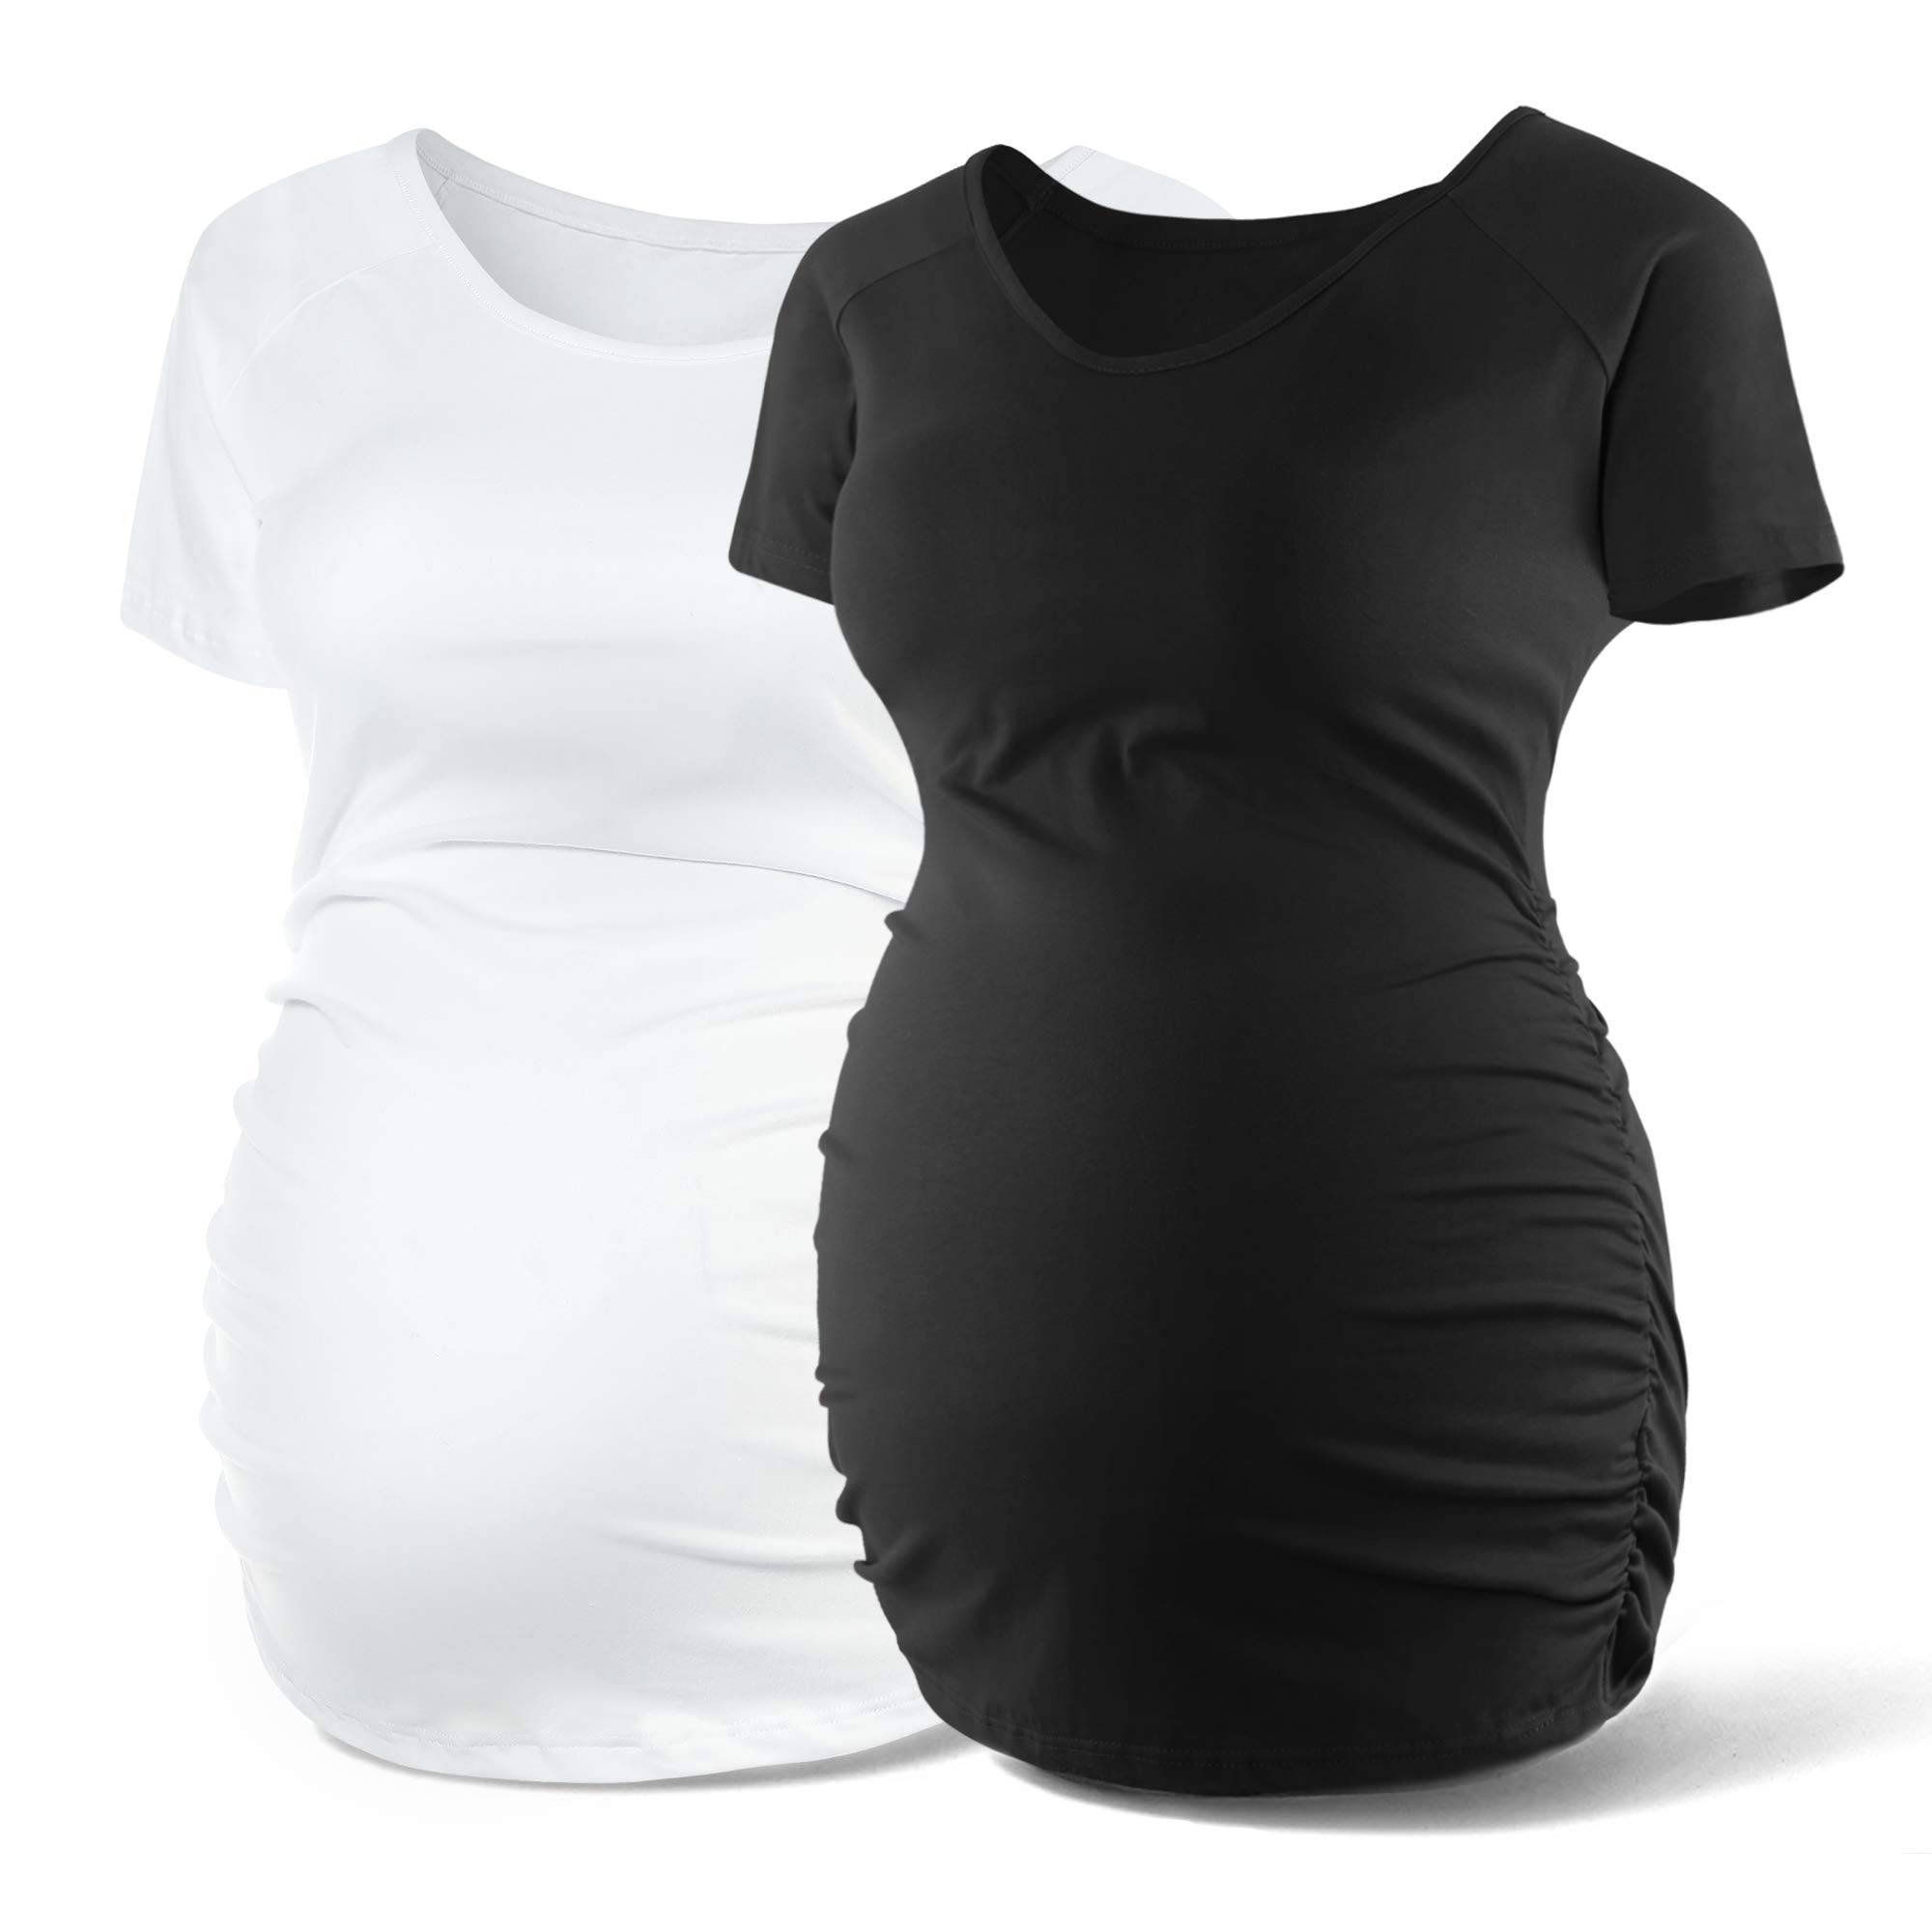 SUNNYBUY Women Crew Neck Maternity Shirt Short Sleeve Maternity Tops Pregnancy Shirts Ruched Tee Cute (Black White-M) by SUNNYBUY